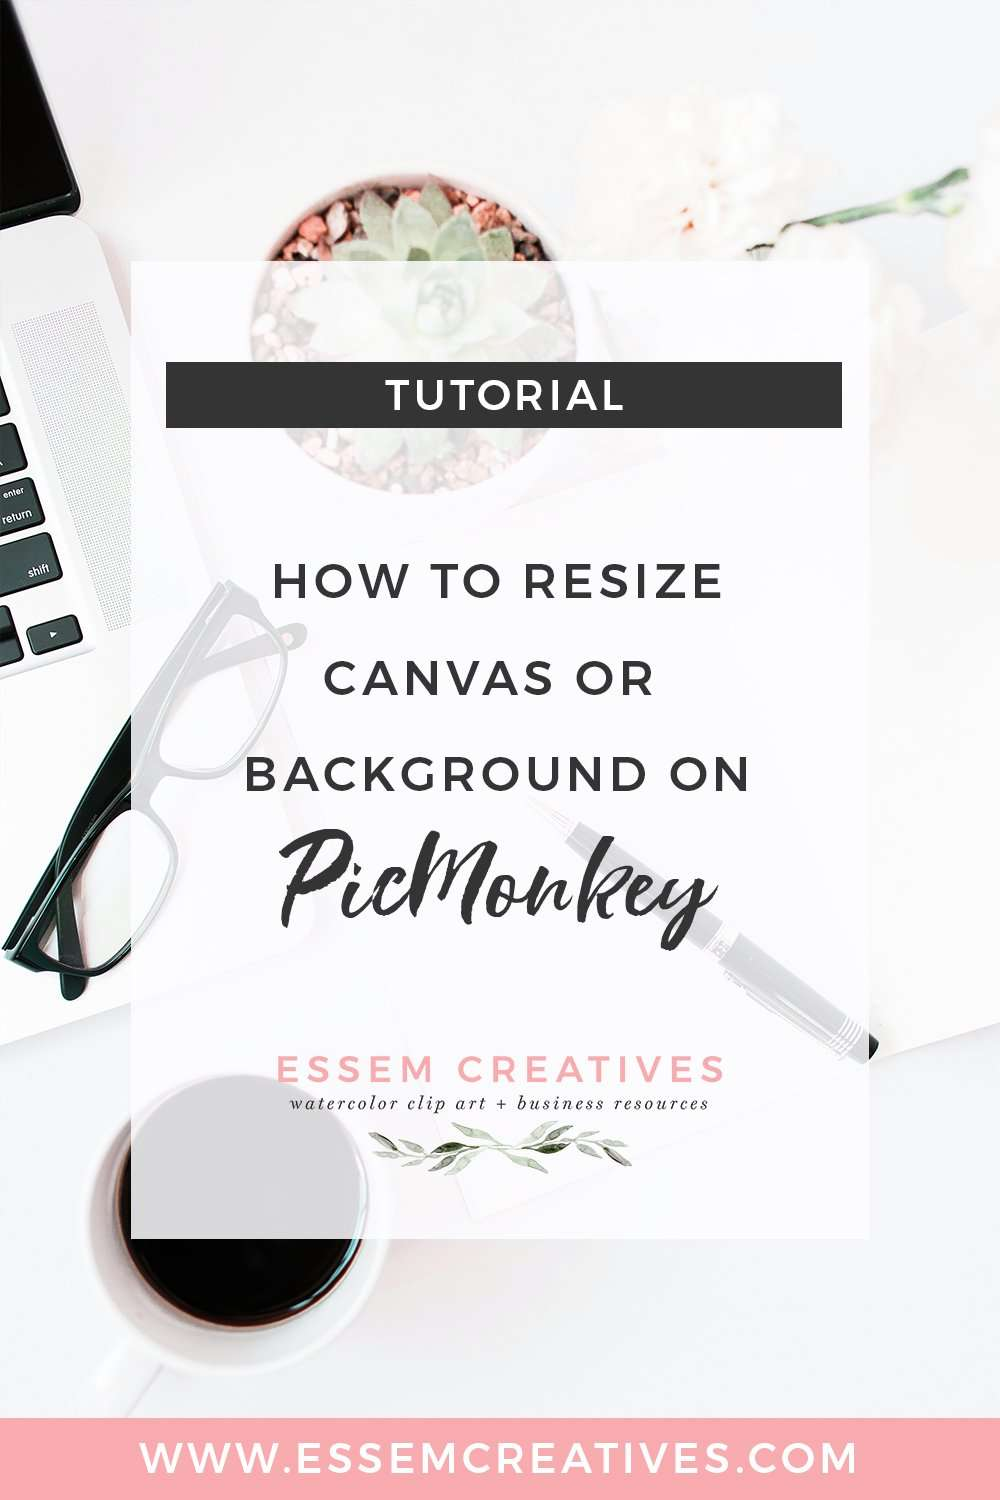 How to resize canvas or background on PicMonkey quickly and easily for your specific needs